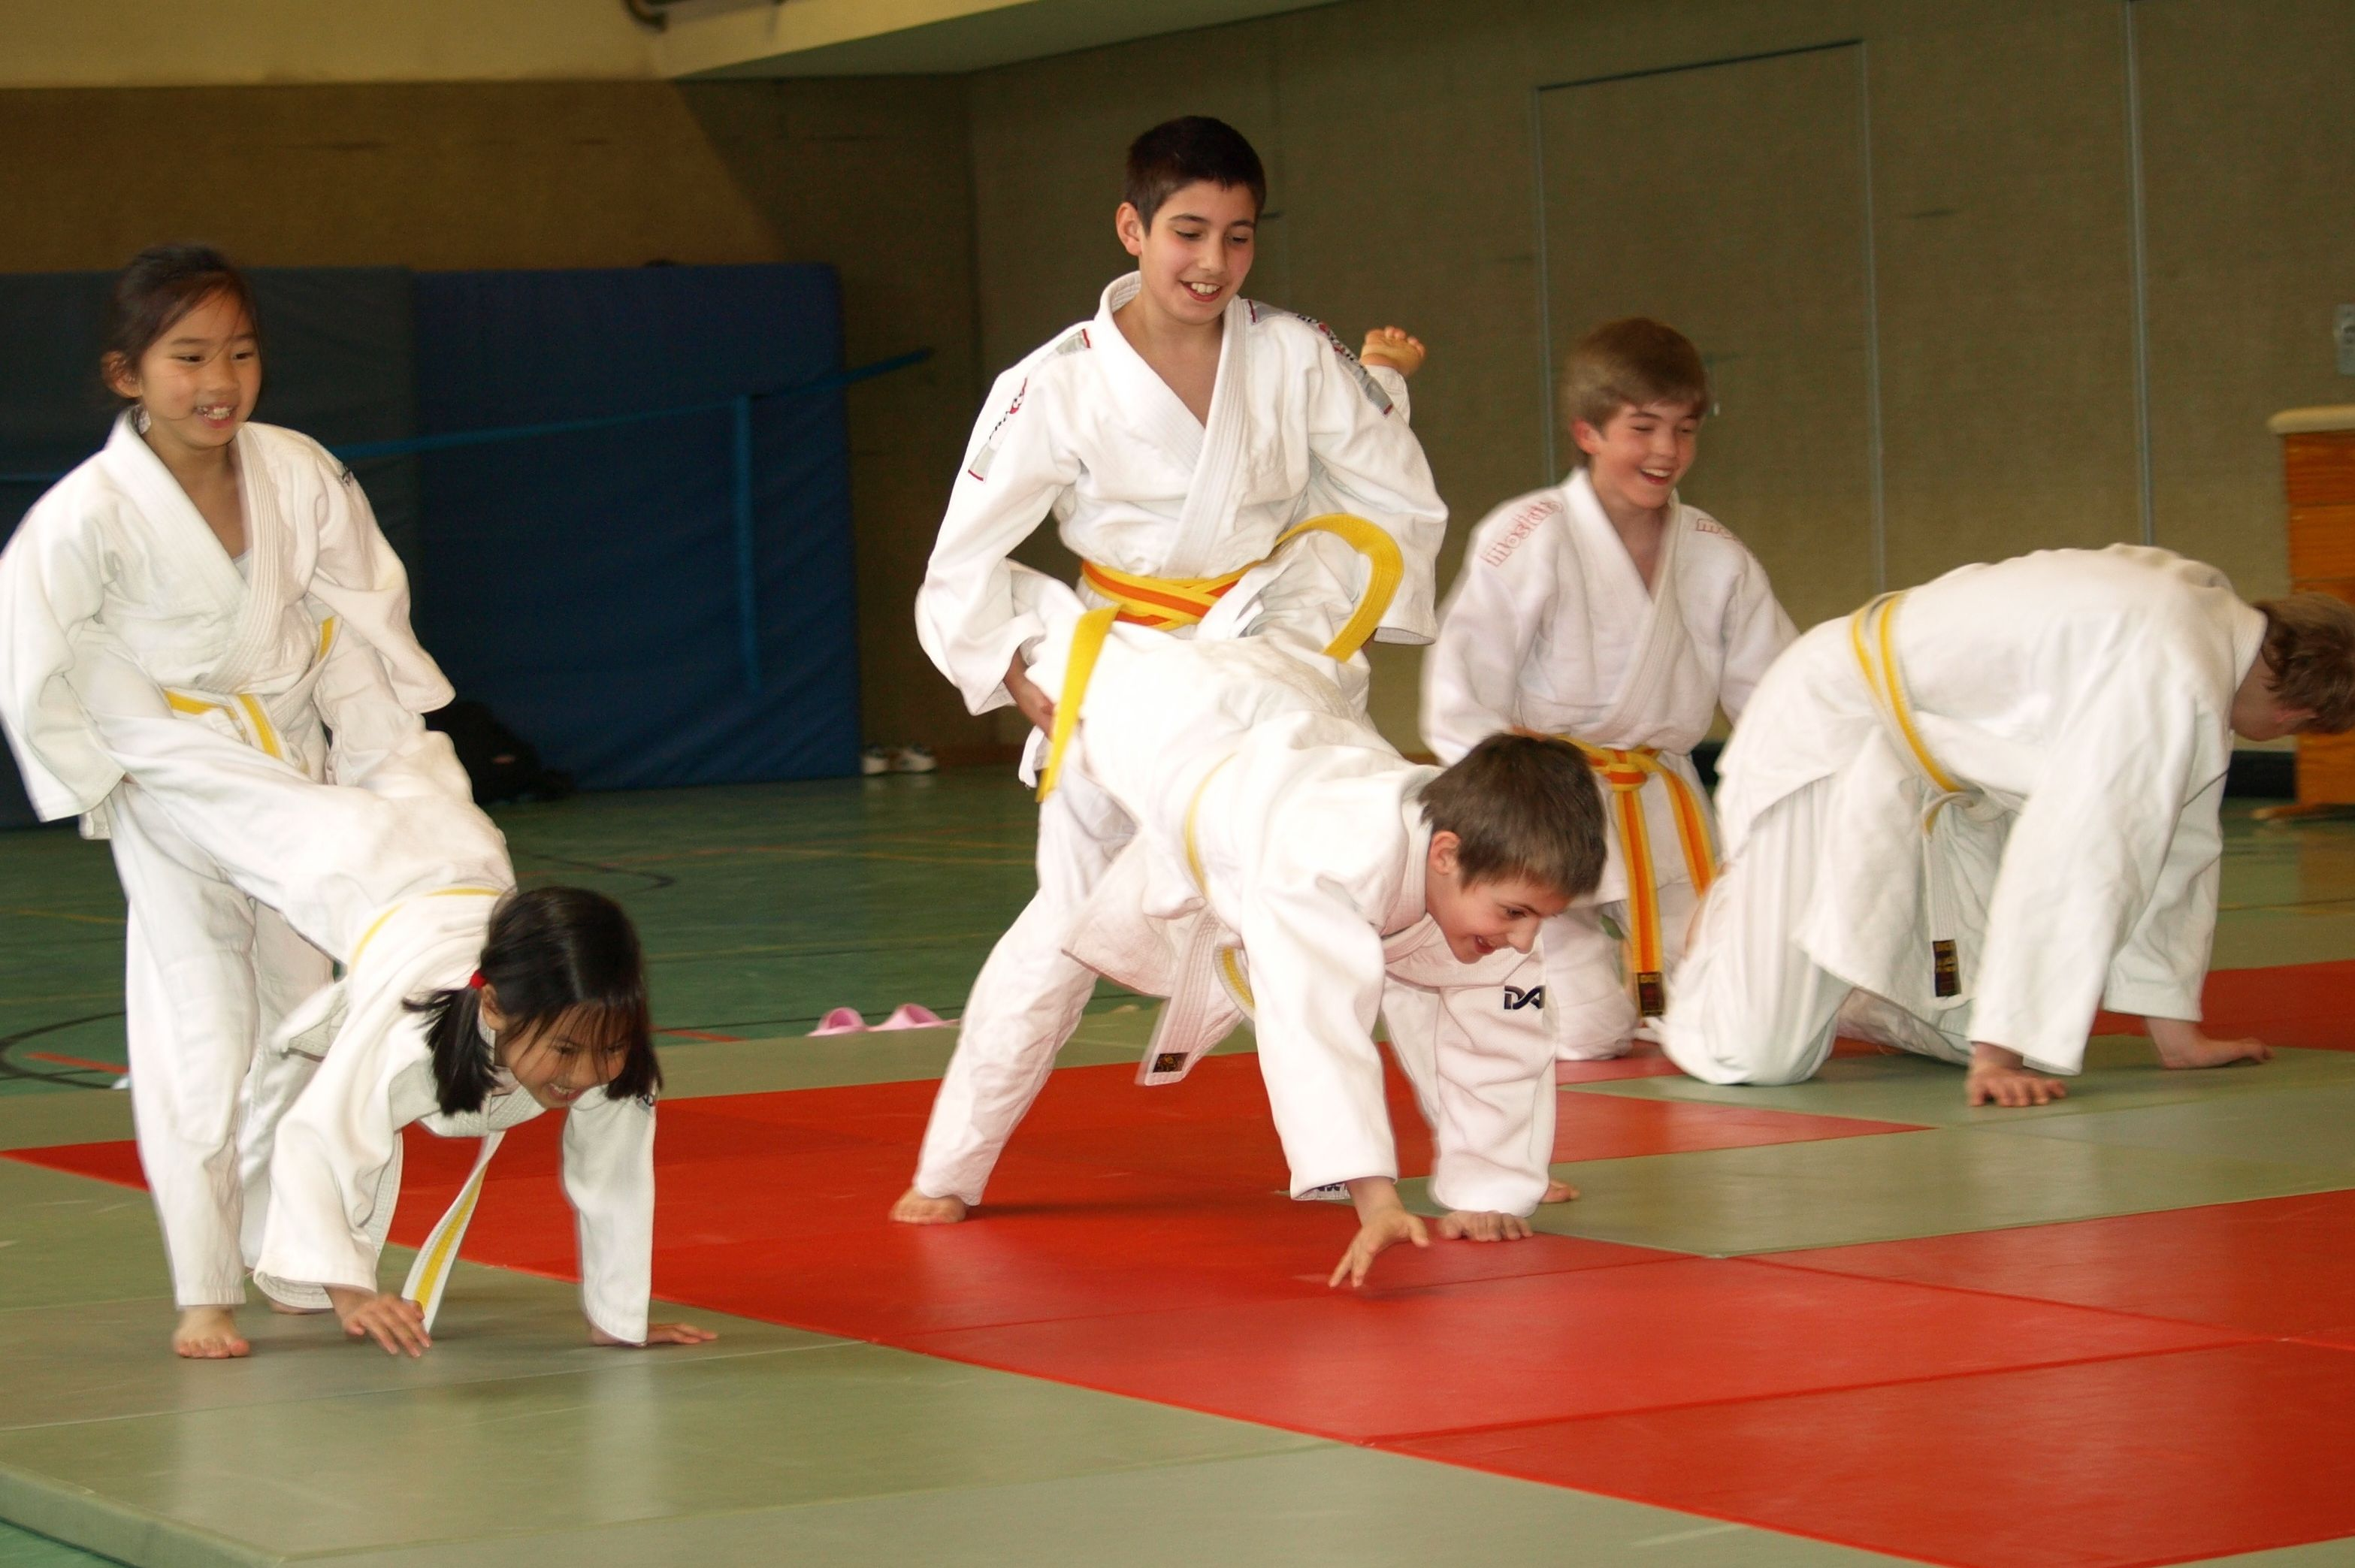 tl_files/verein/bilder/Chronik/Judo Training1.jpg